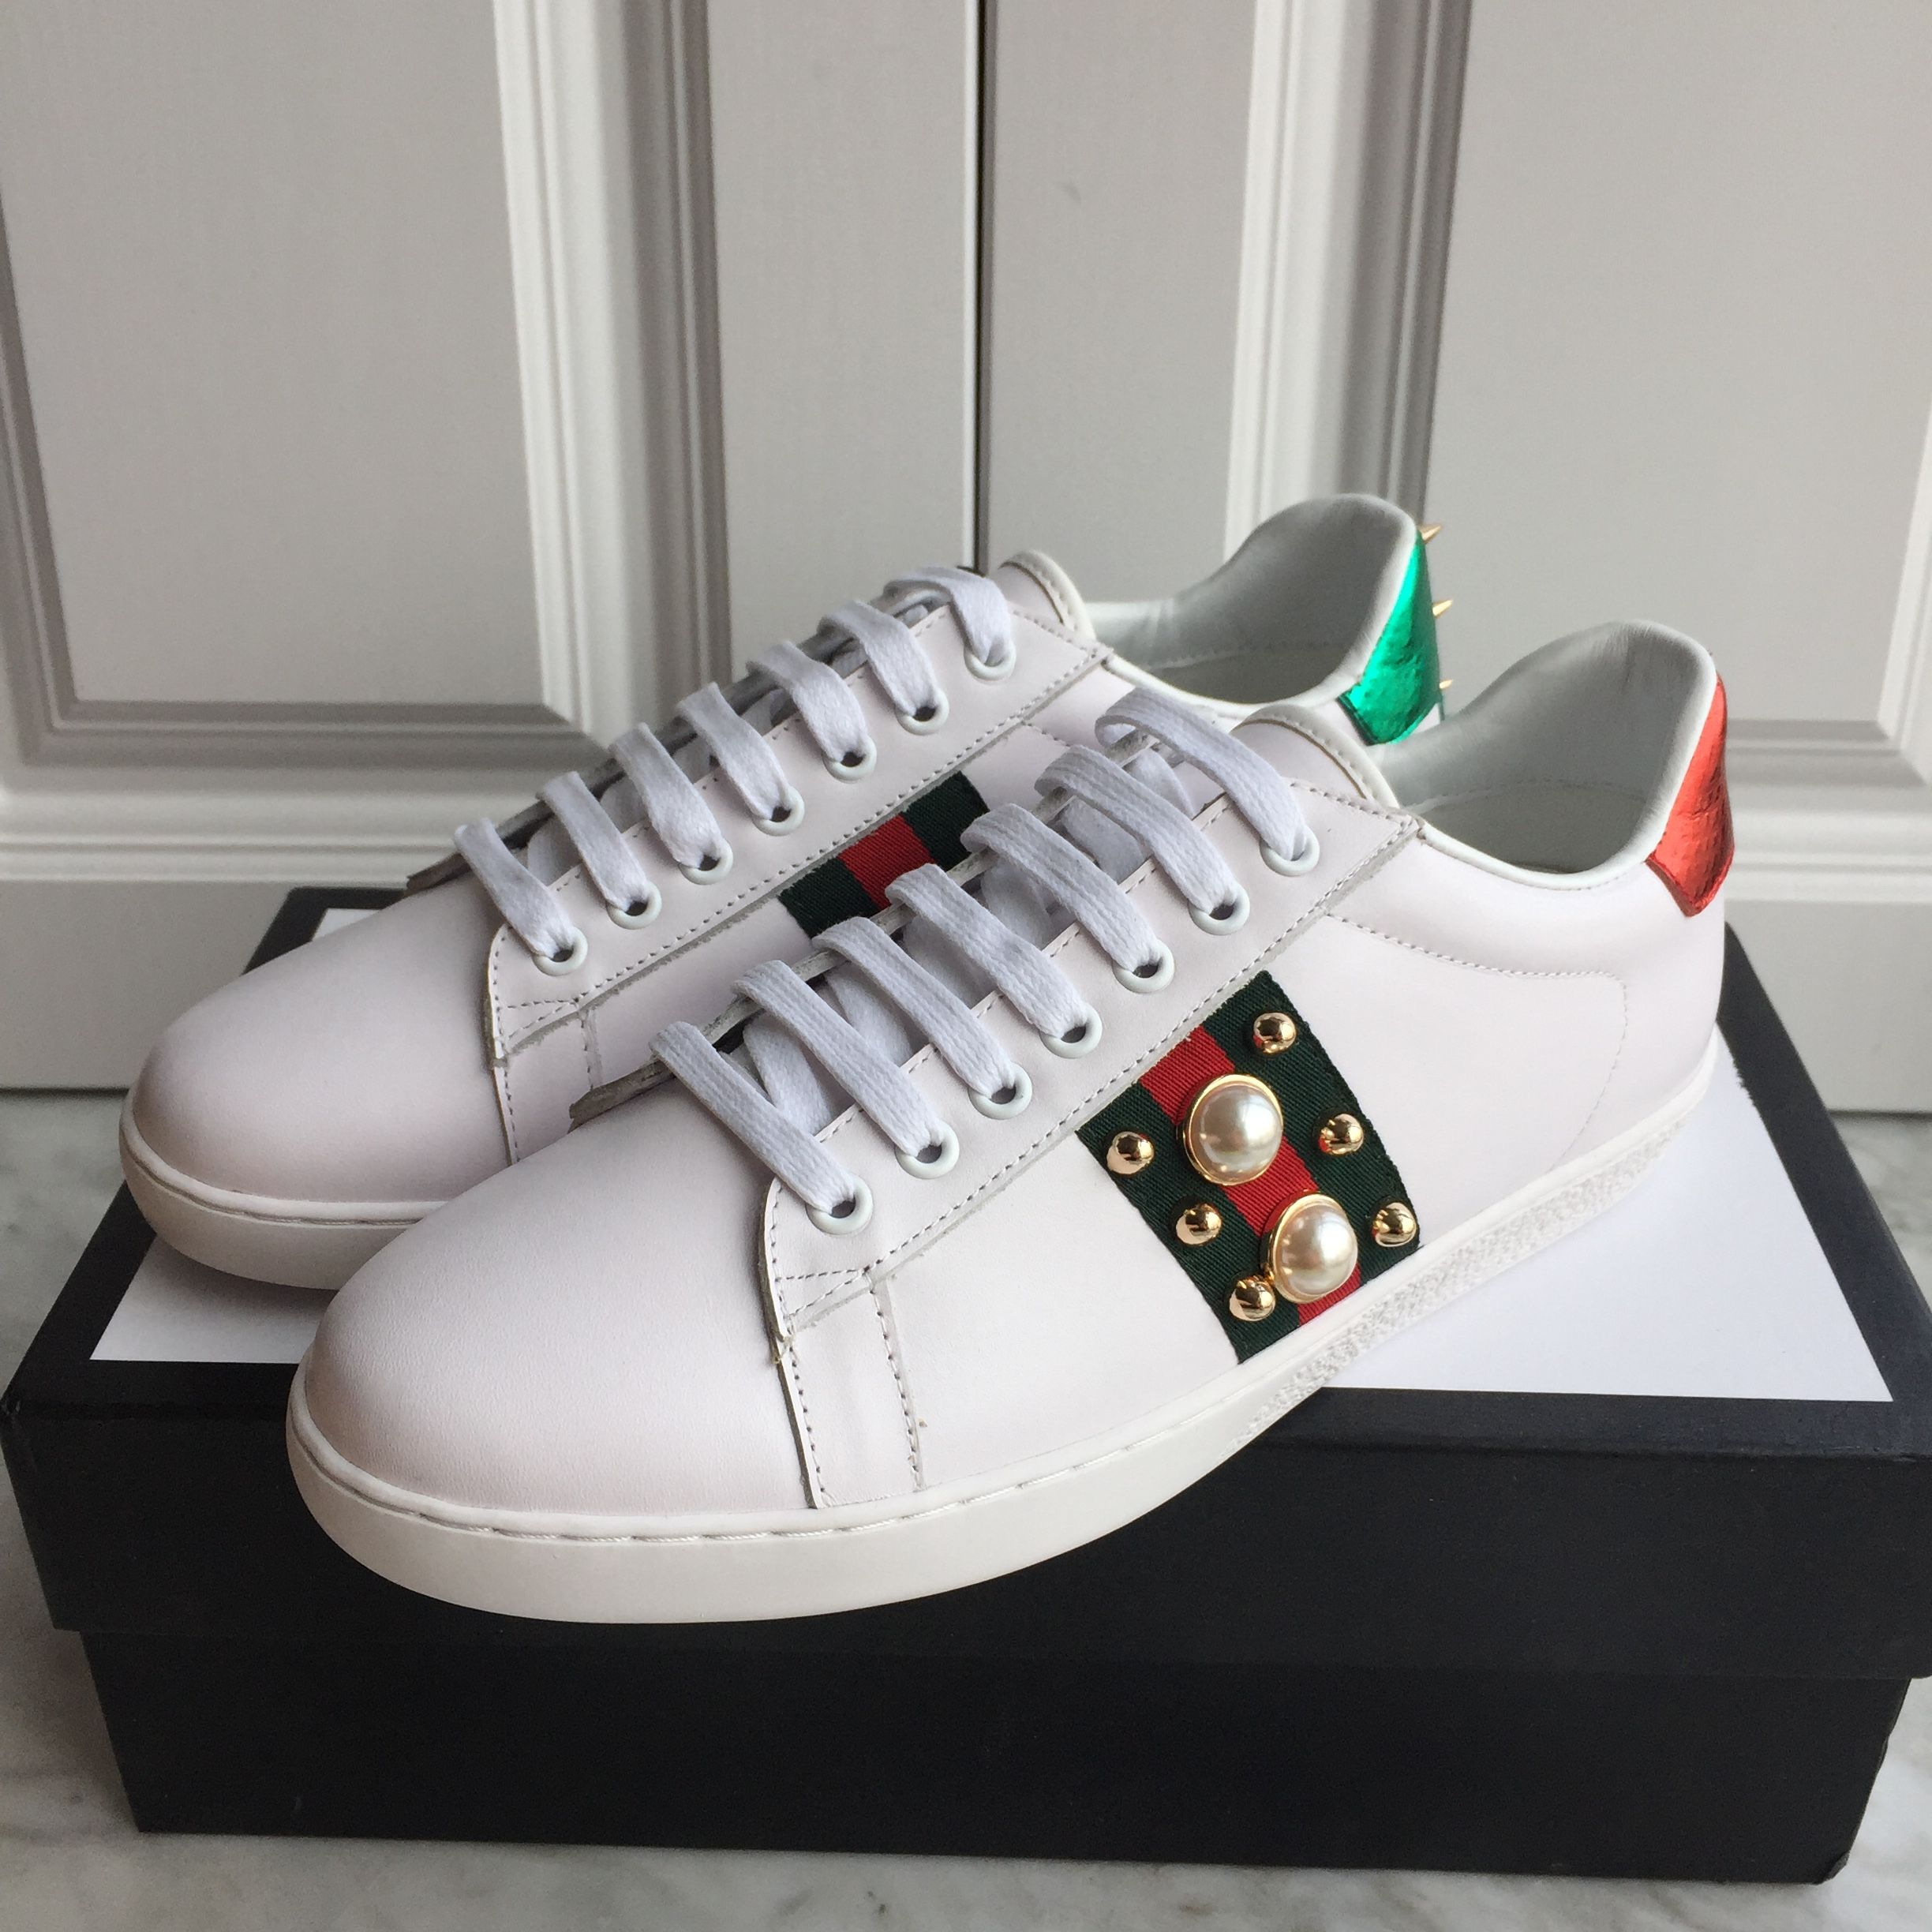 fb7ca19fb0f2c Gucci unisex woman man white shoes leather sneakers pearl   studs design